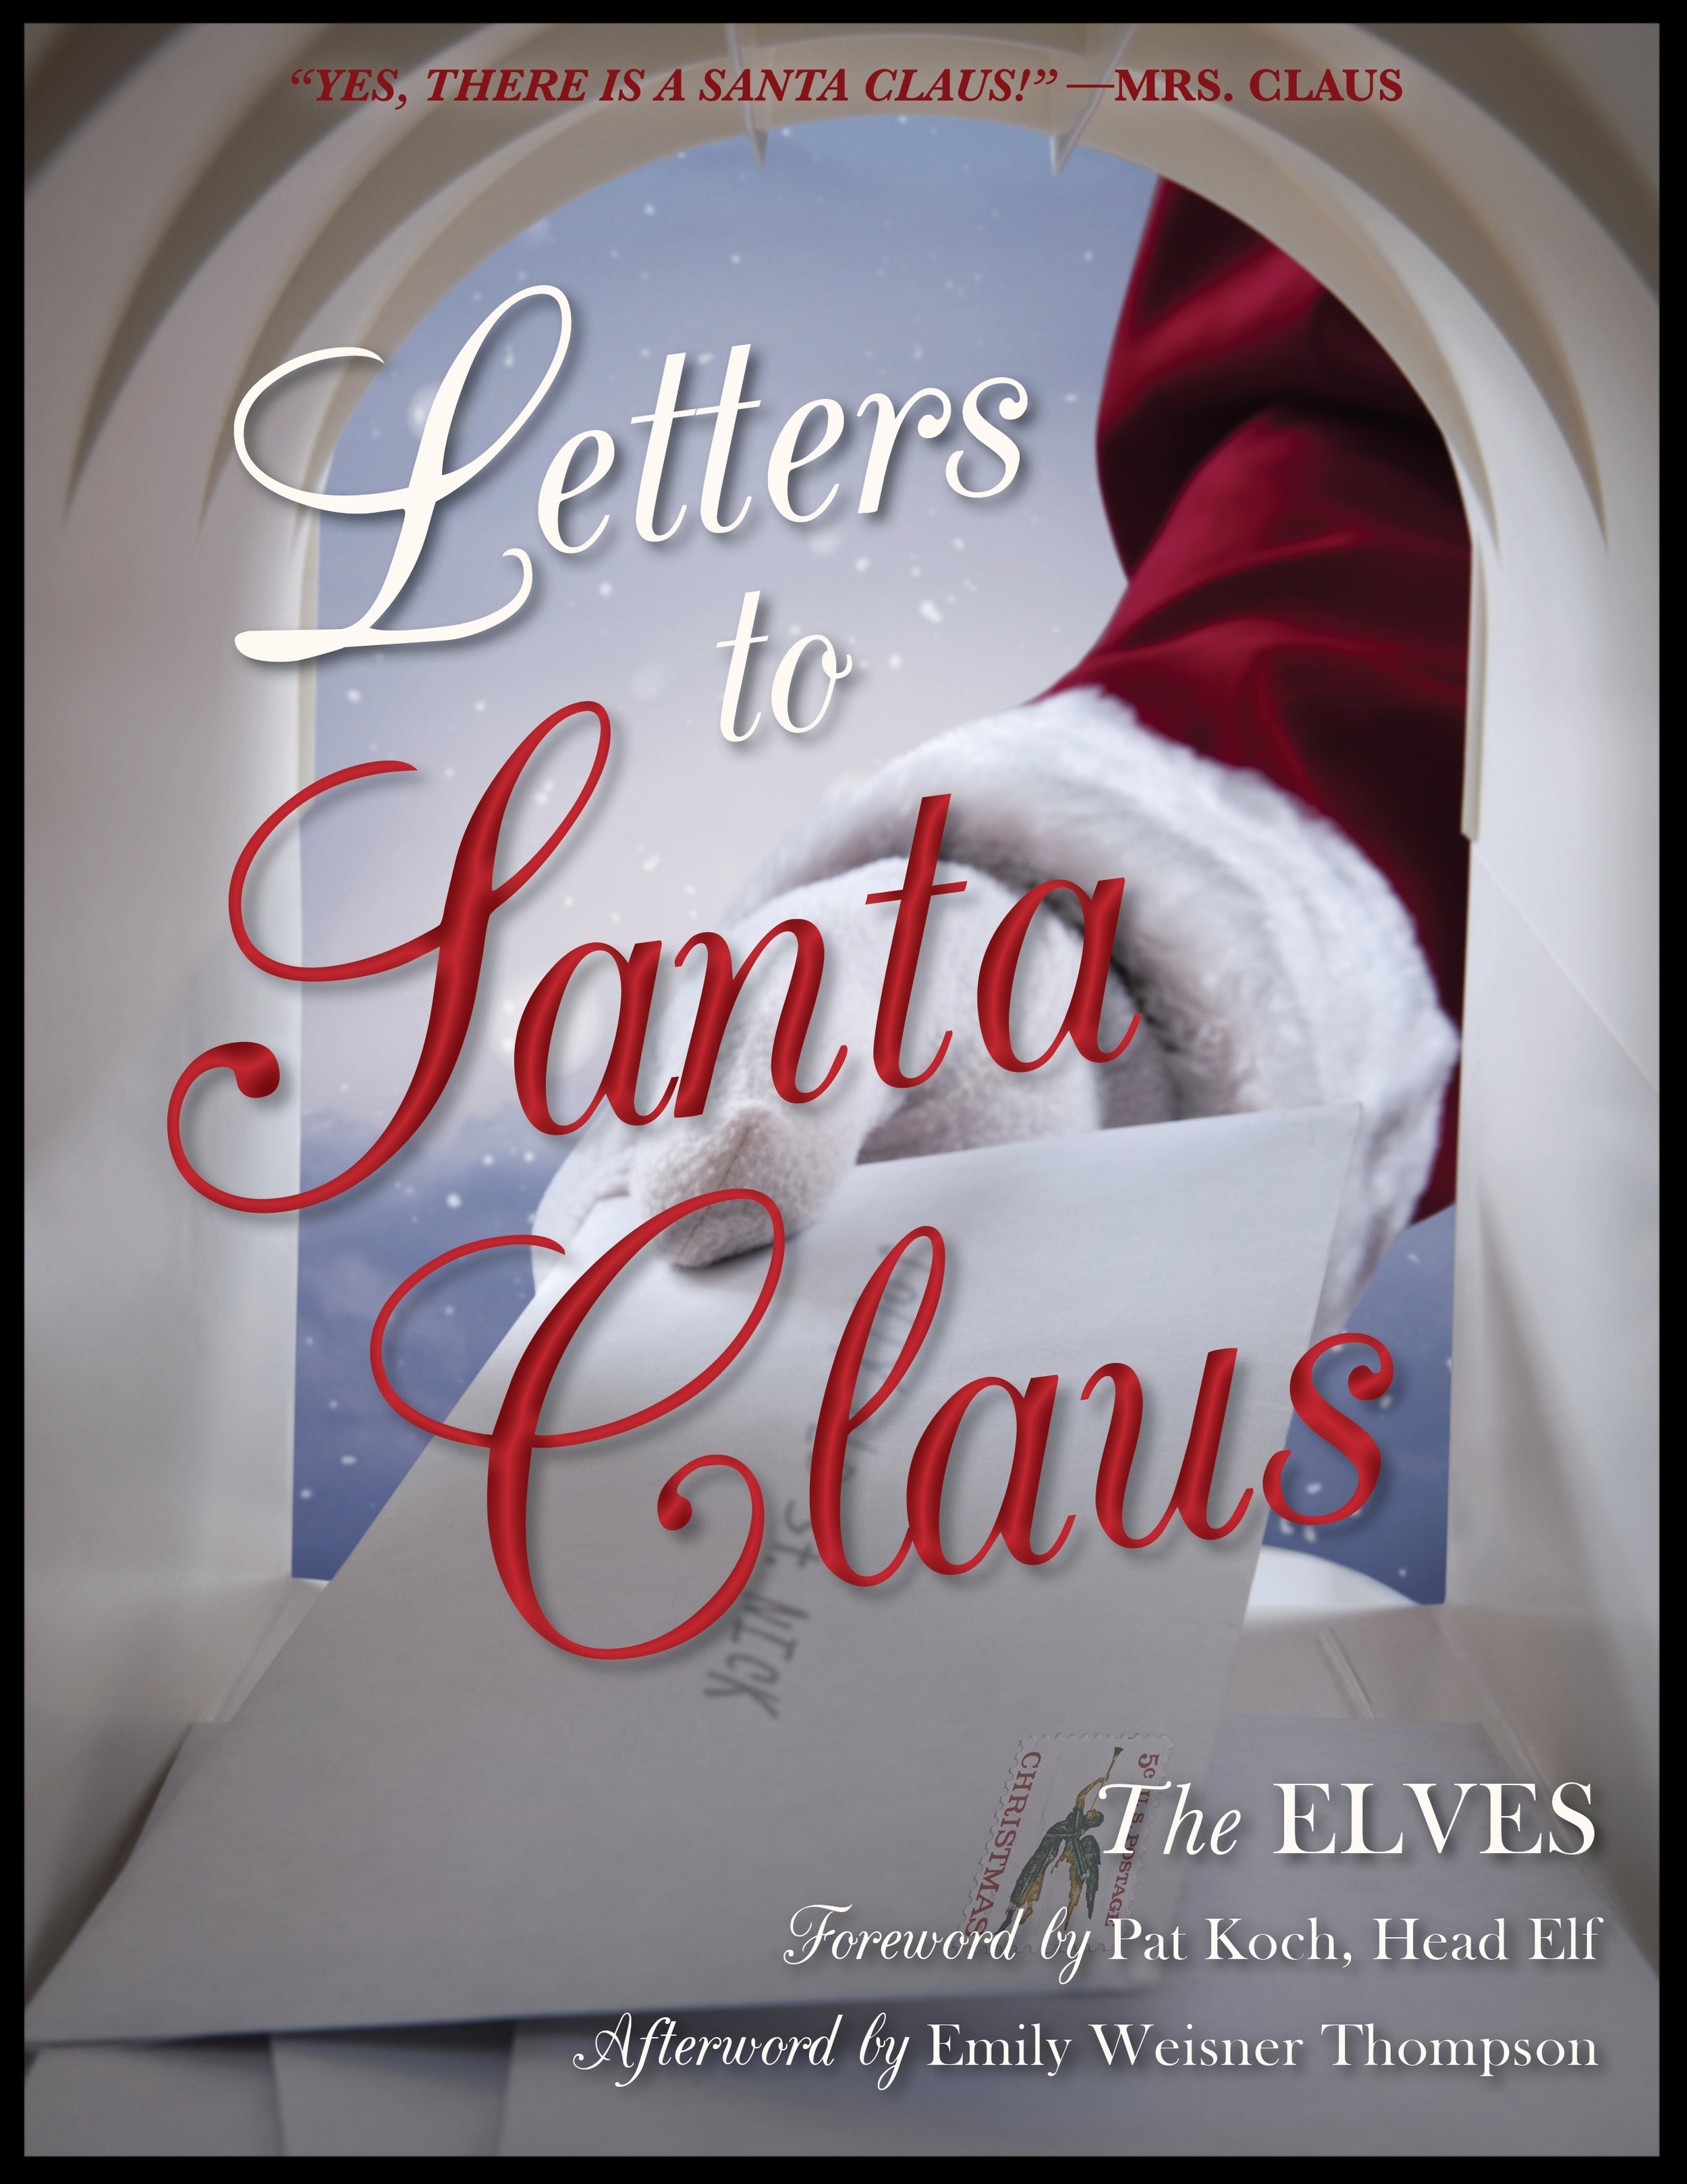 Letters to Santa Claus